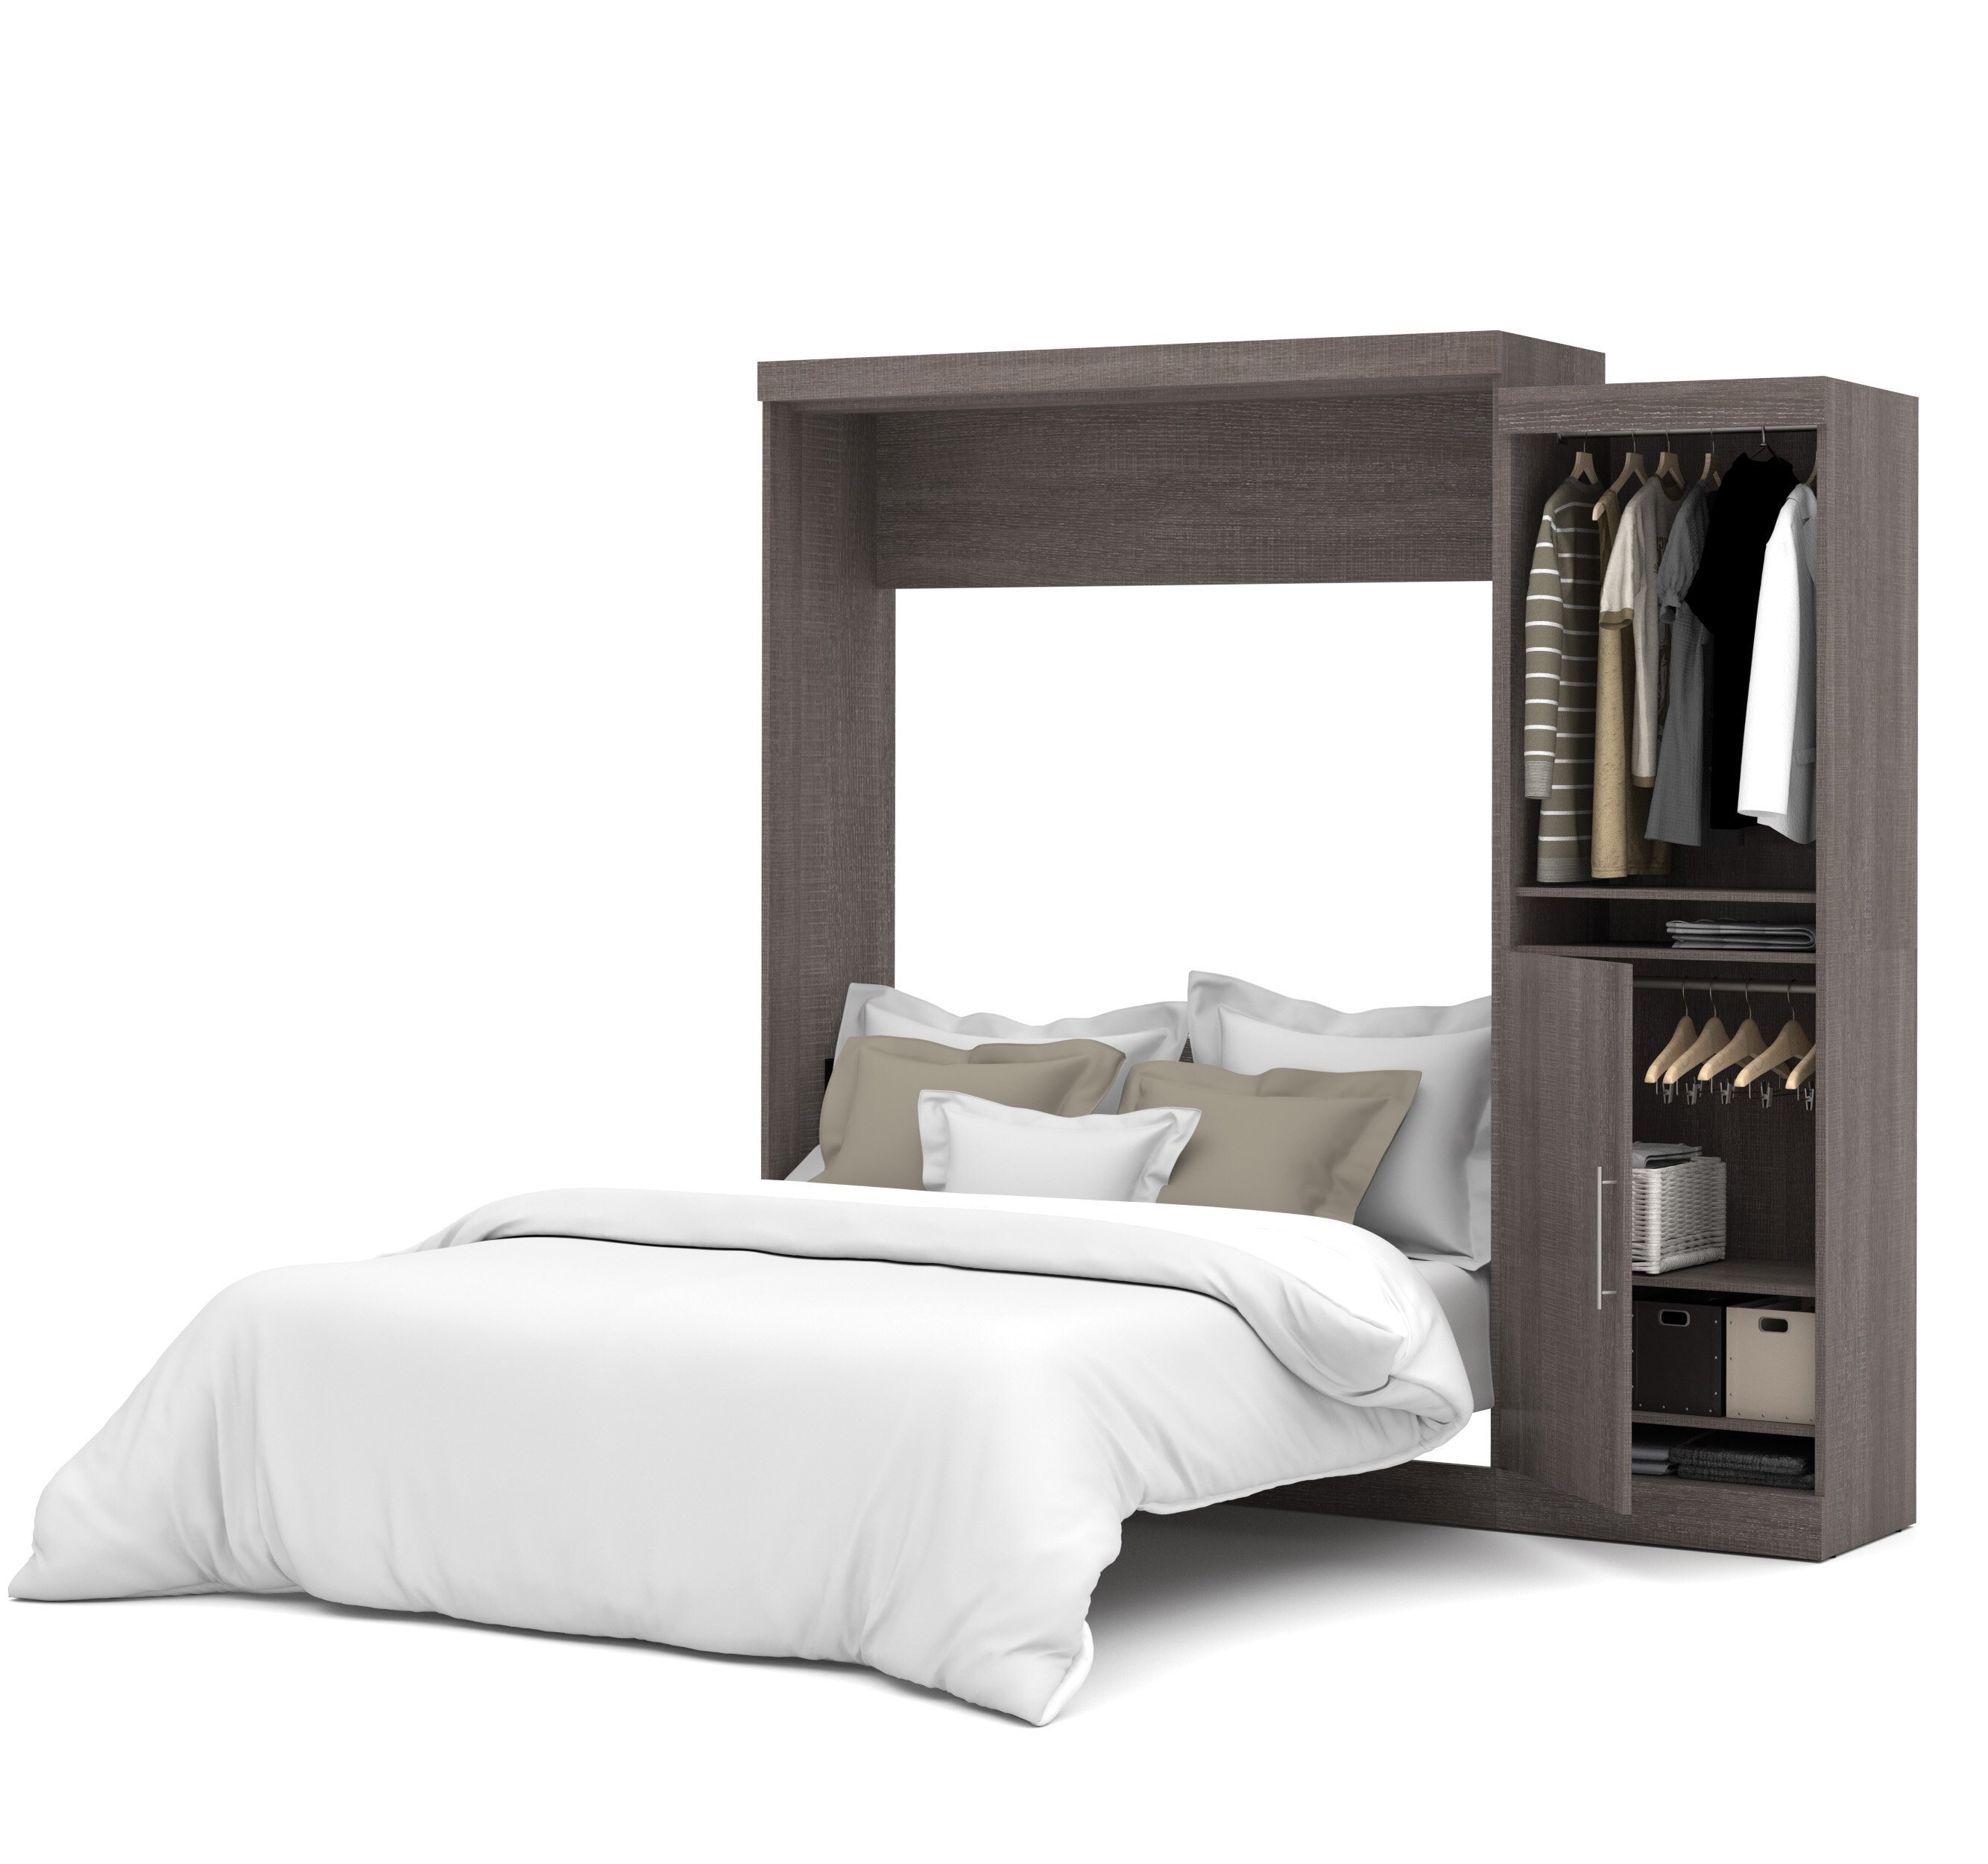 queen glossy category closed tilt space white solutions archives spacesolutionsweblog showroom display murphy single side bed